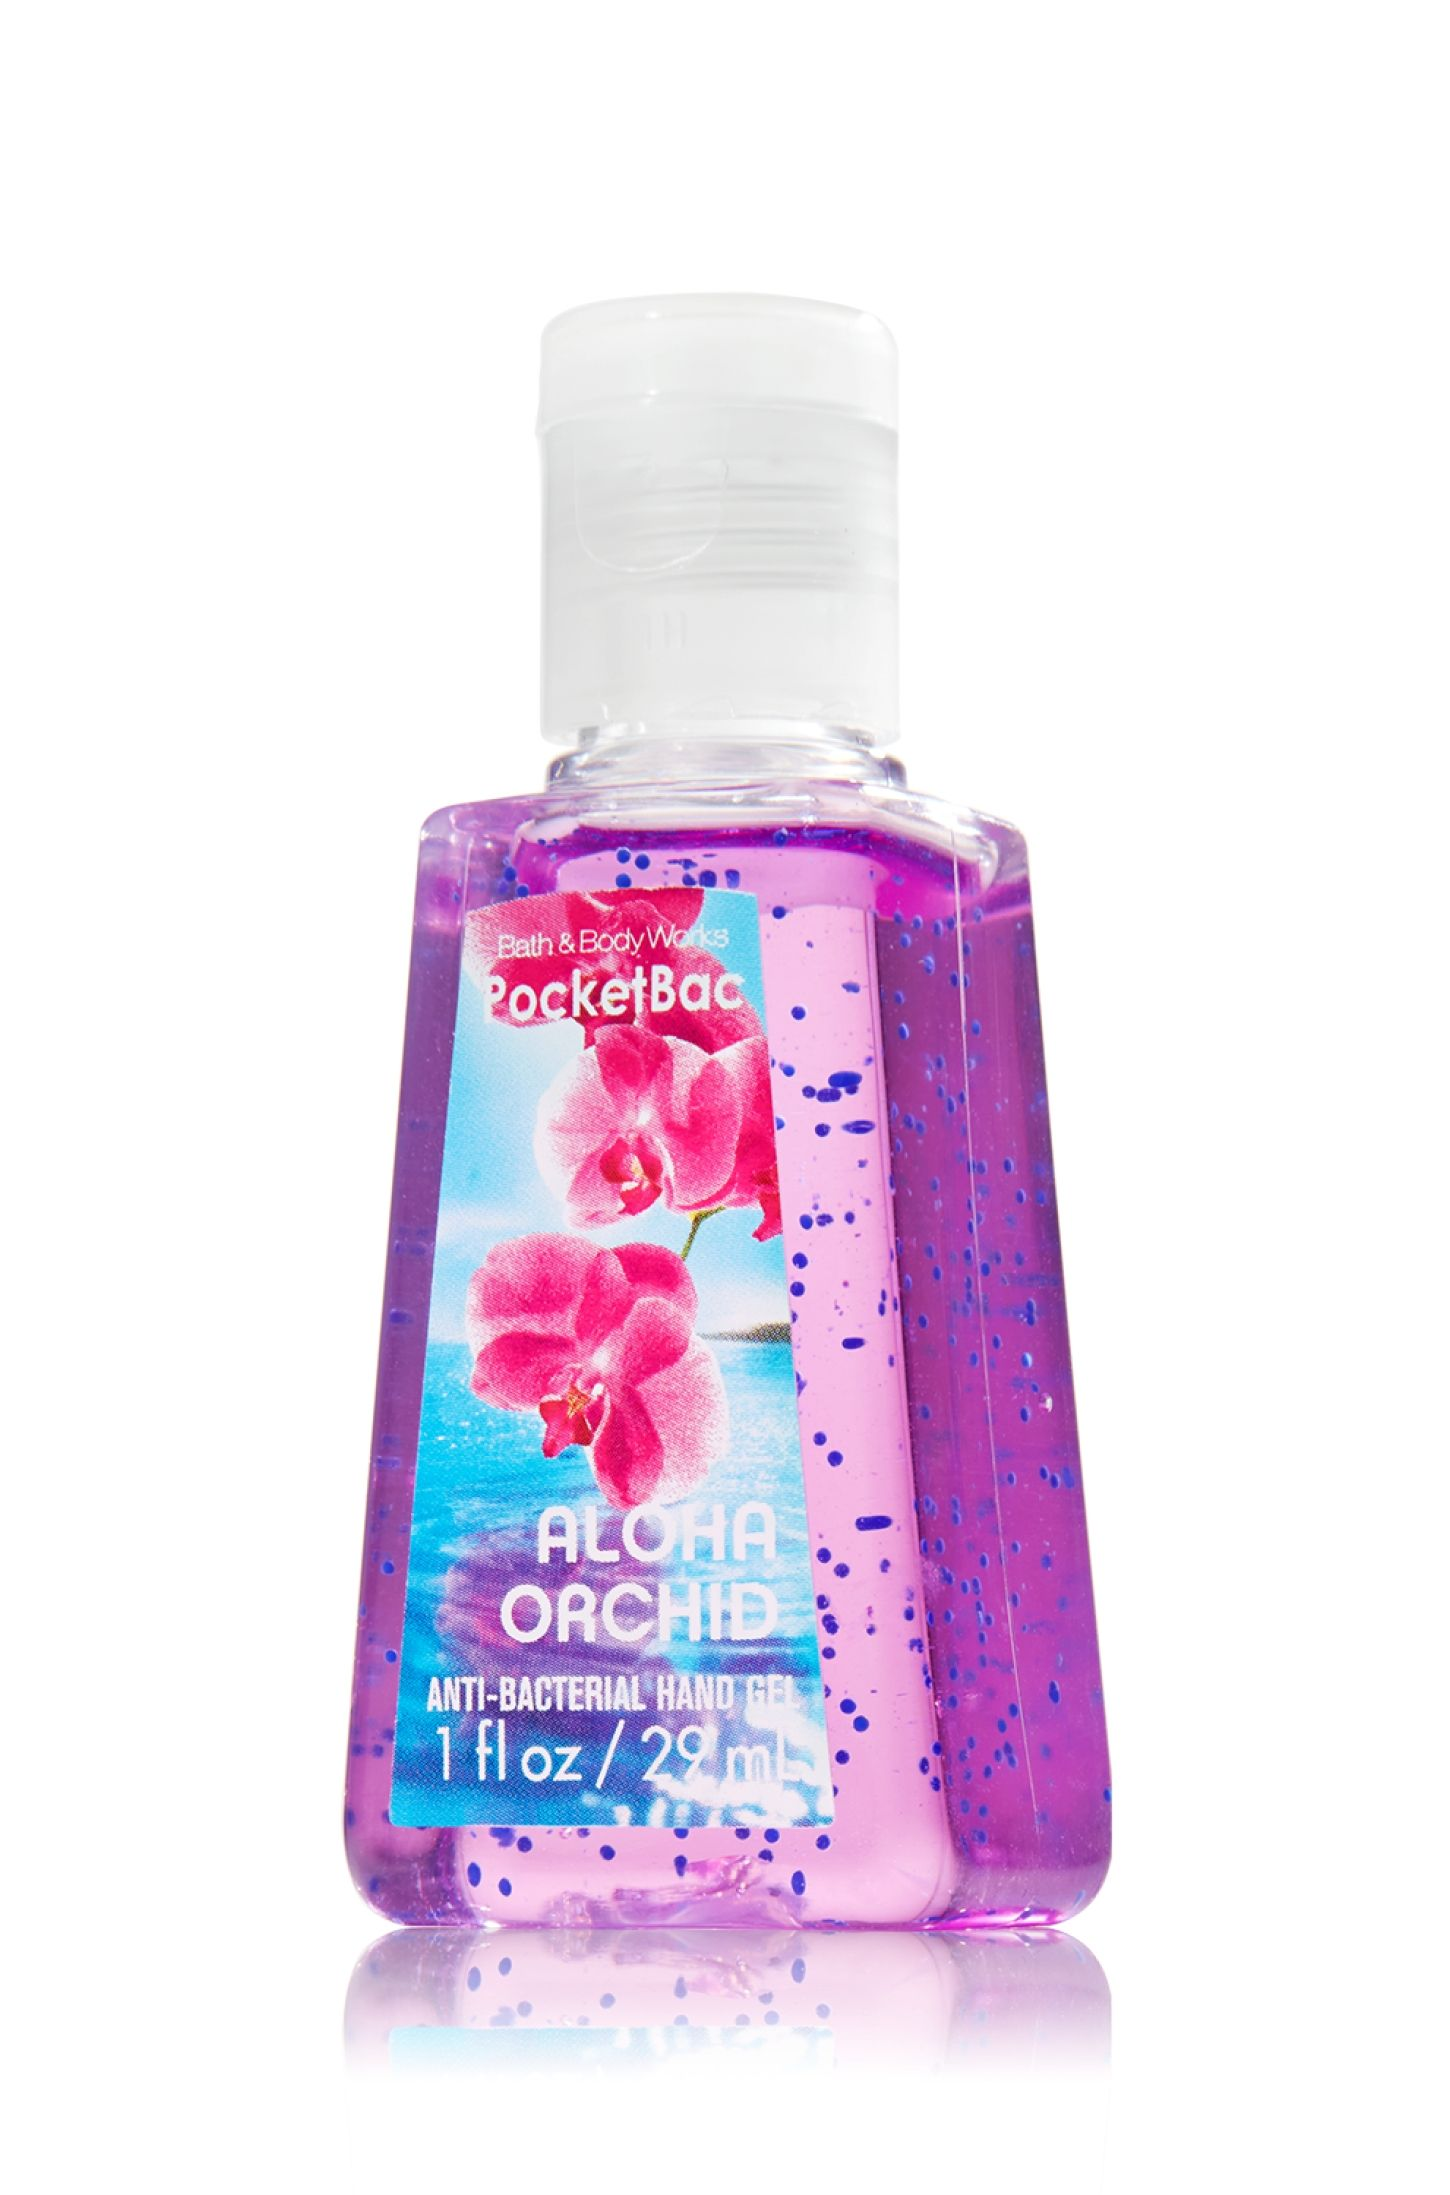 Aloha Orchid Pocketbac Sanitizing Hand Gel Anti Bacterial Bath